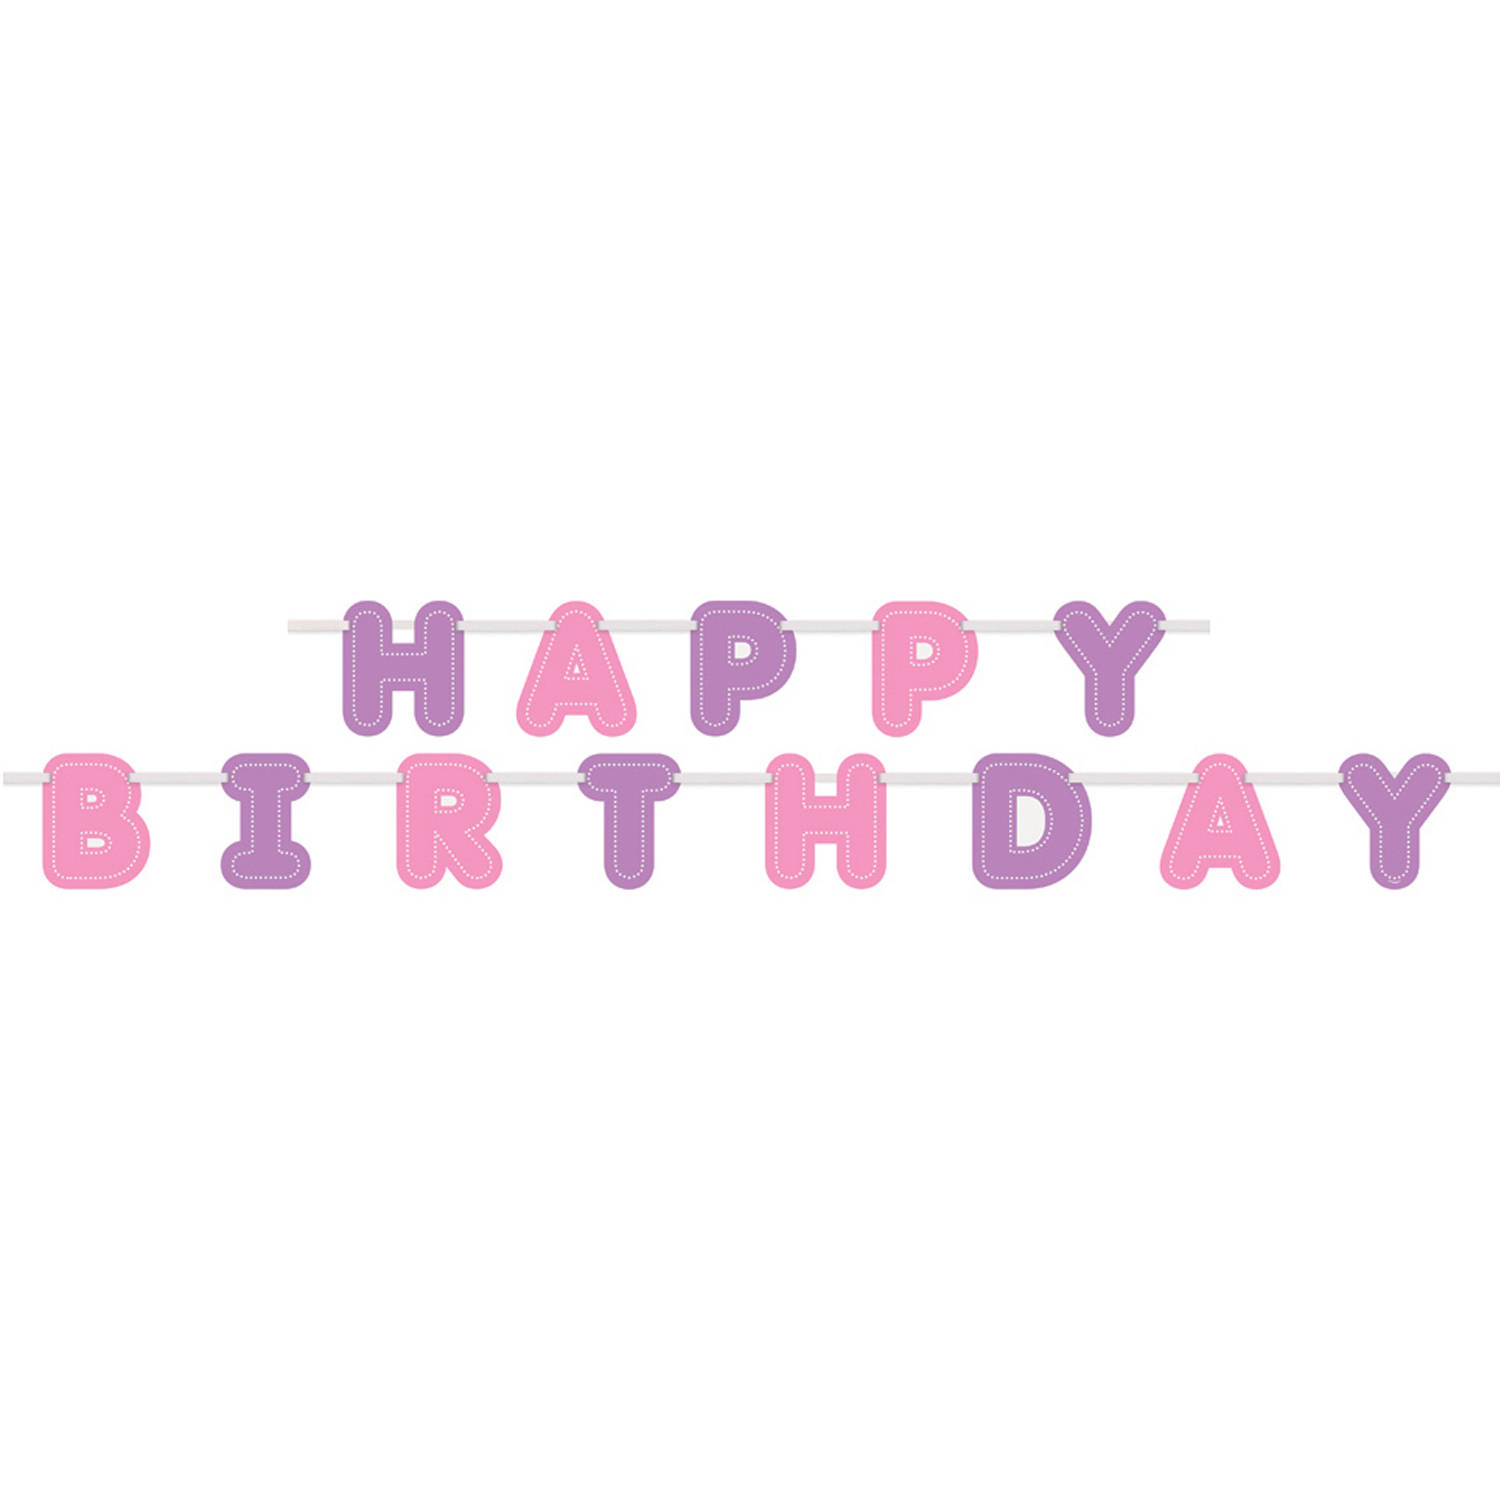 happy birthday banner 9 ft purple and pink 1ct walmart com